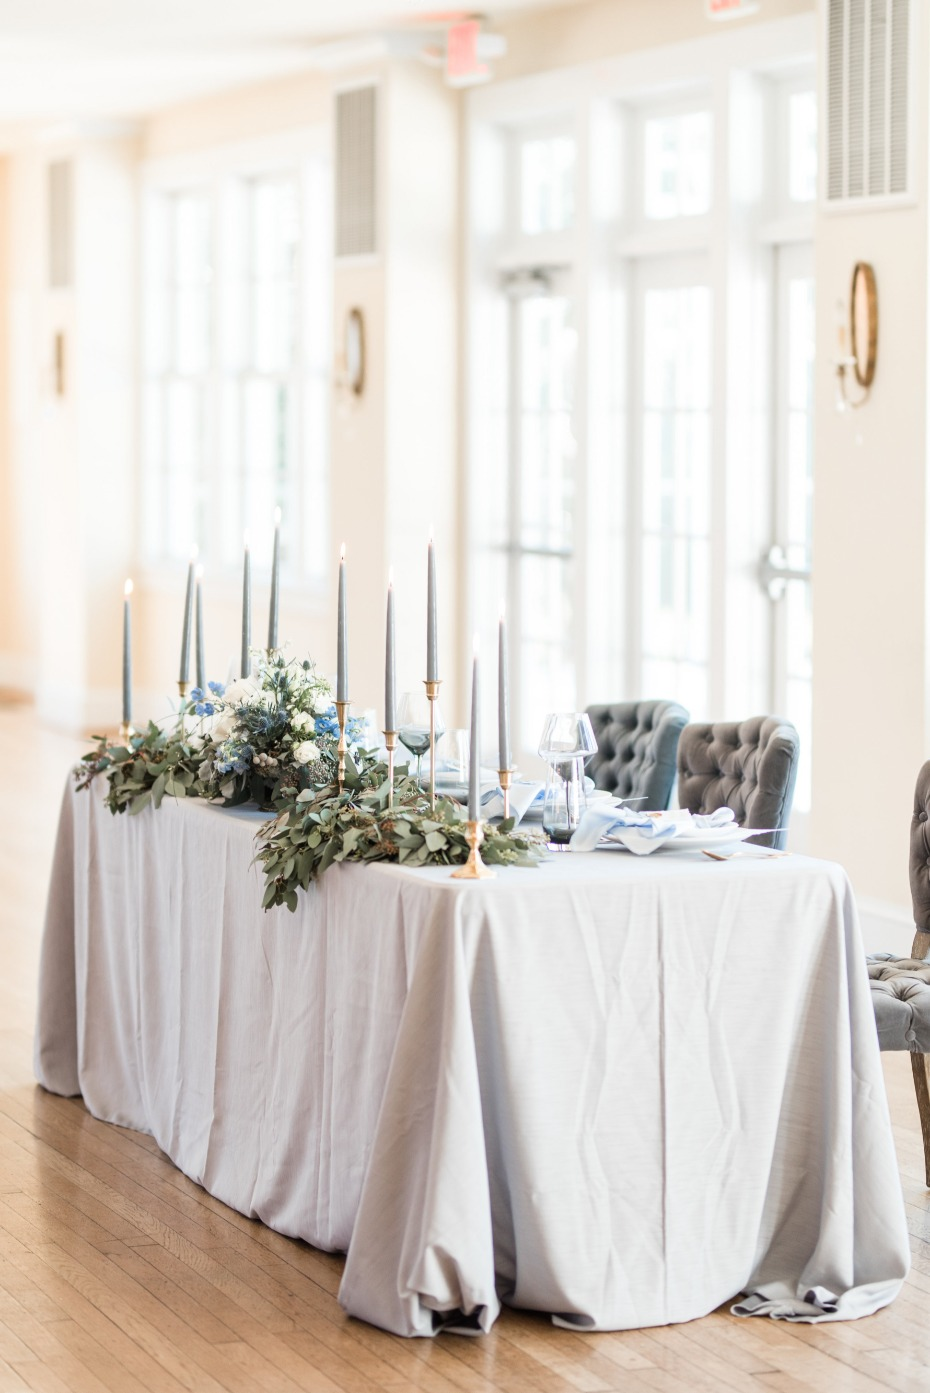 Muted blue sweetheart table